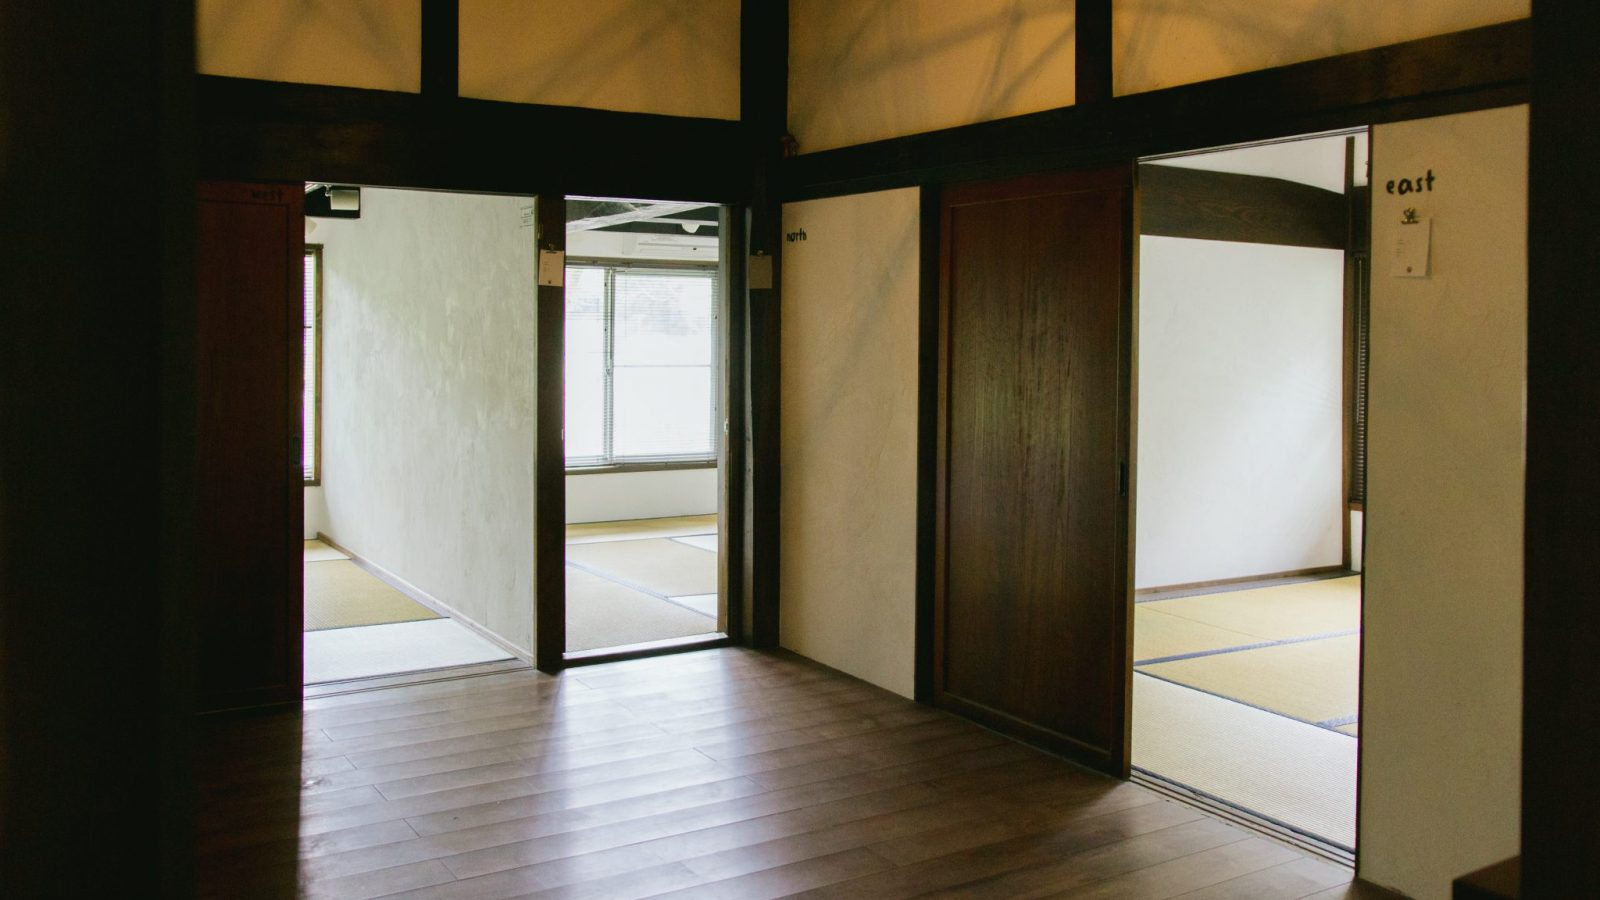 All private rooms are on the 2nd floor of the guesthouse at Retreat wabi-sabi